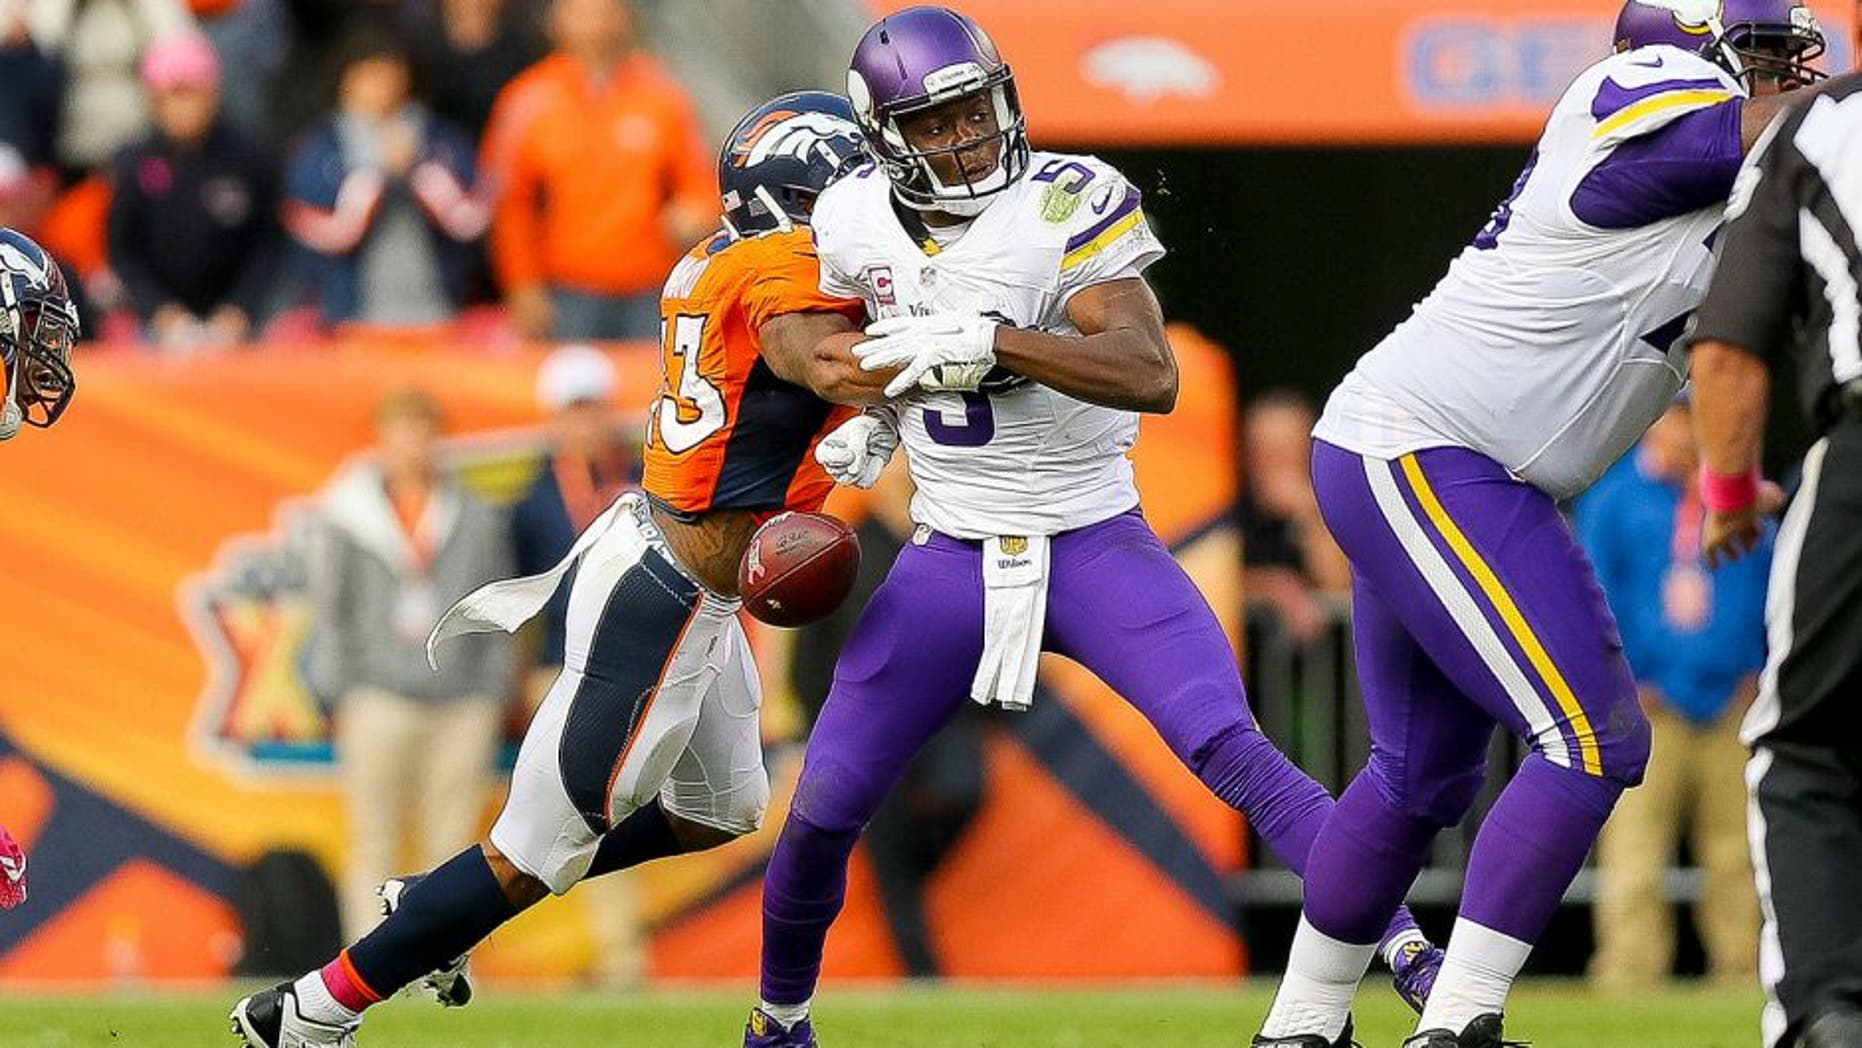 DENVER, CO - OCTOBER 4: Quarterback Teddy Bridgewater #5 of the Minnesota Vikings has the ball stripped by strong safety T.J. Ward #43 of the Denver Broncos to end the game in favor of the Denver Broncos by a score of 23-20 at Sports Authority Field at Mile High on October 4, 2015 in Denver, Colorado. (Photo by Justin Edmonds/Getty Images)